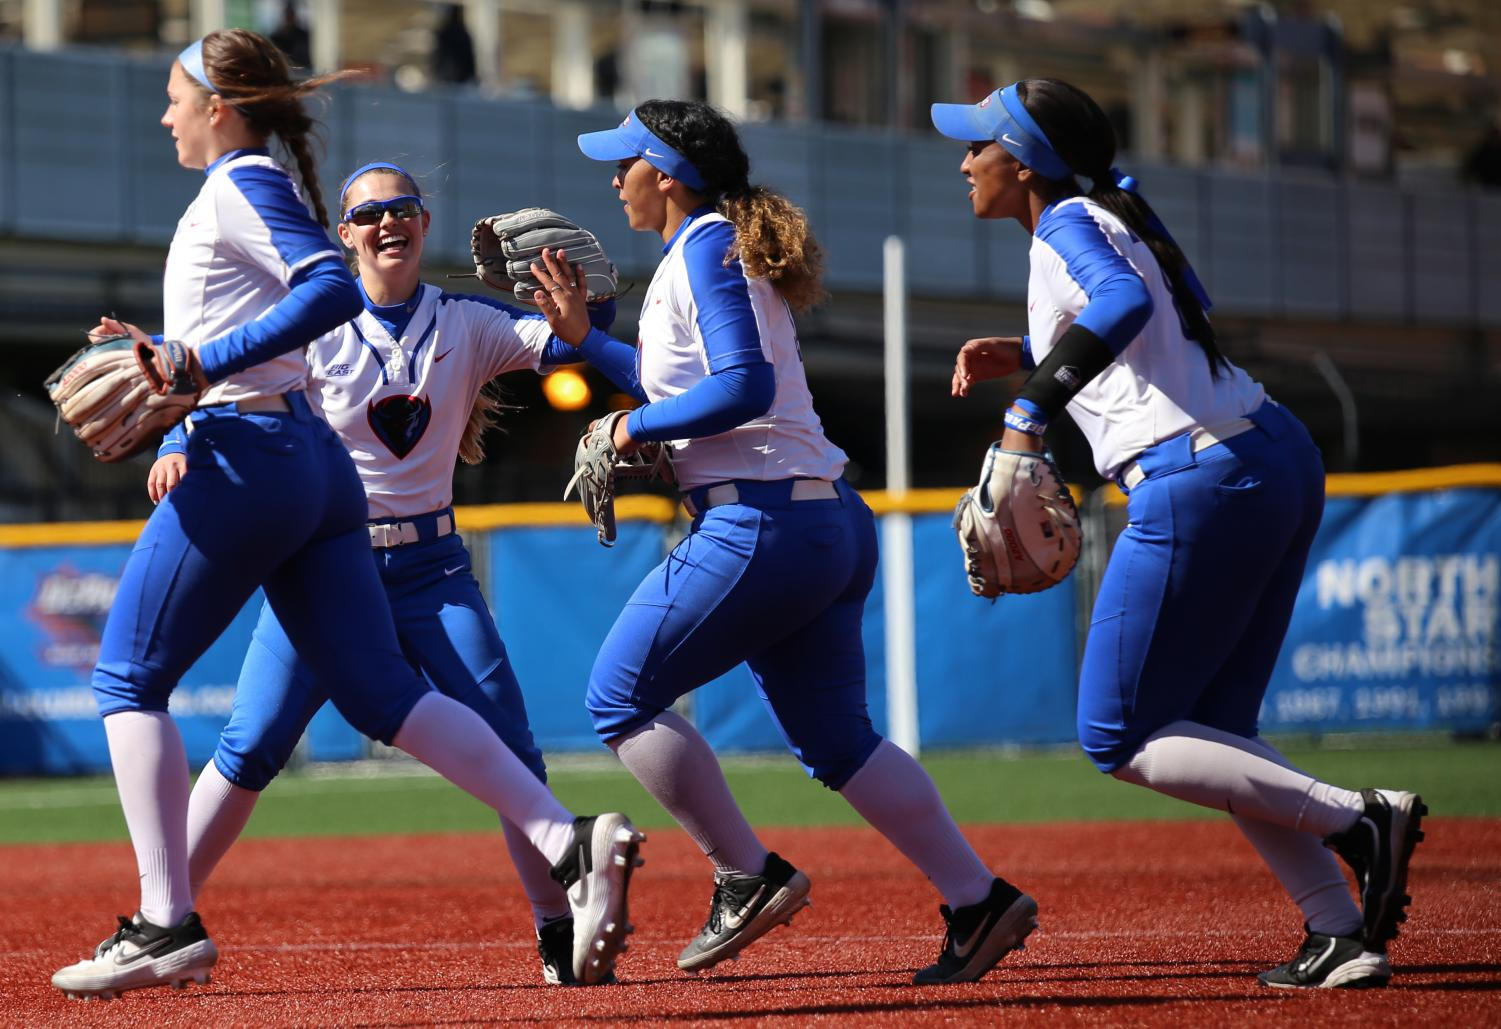 (Left to right) Skylor Hilger, Angela Scalzitti, Erin Andris and Morgan Greenwood celebrate the end of an inning against Providence at Cacciatore Stadium on April 13.